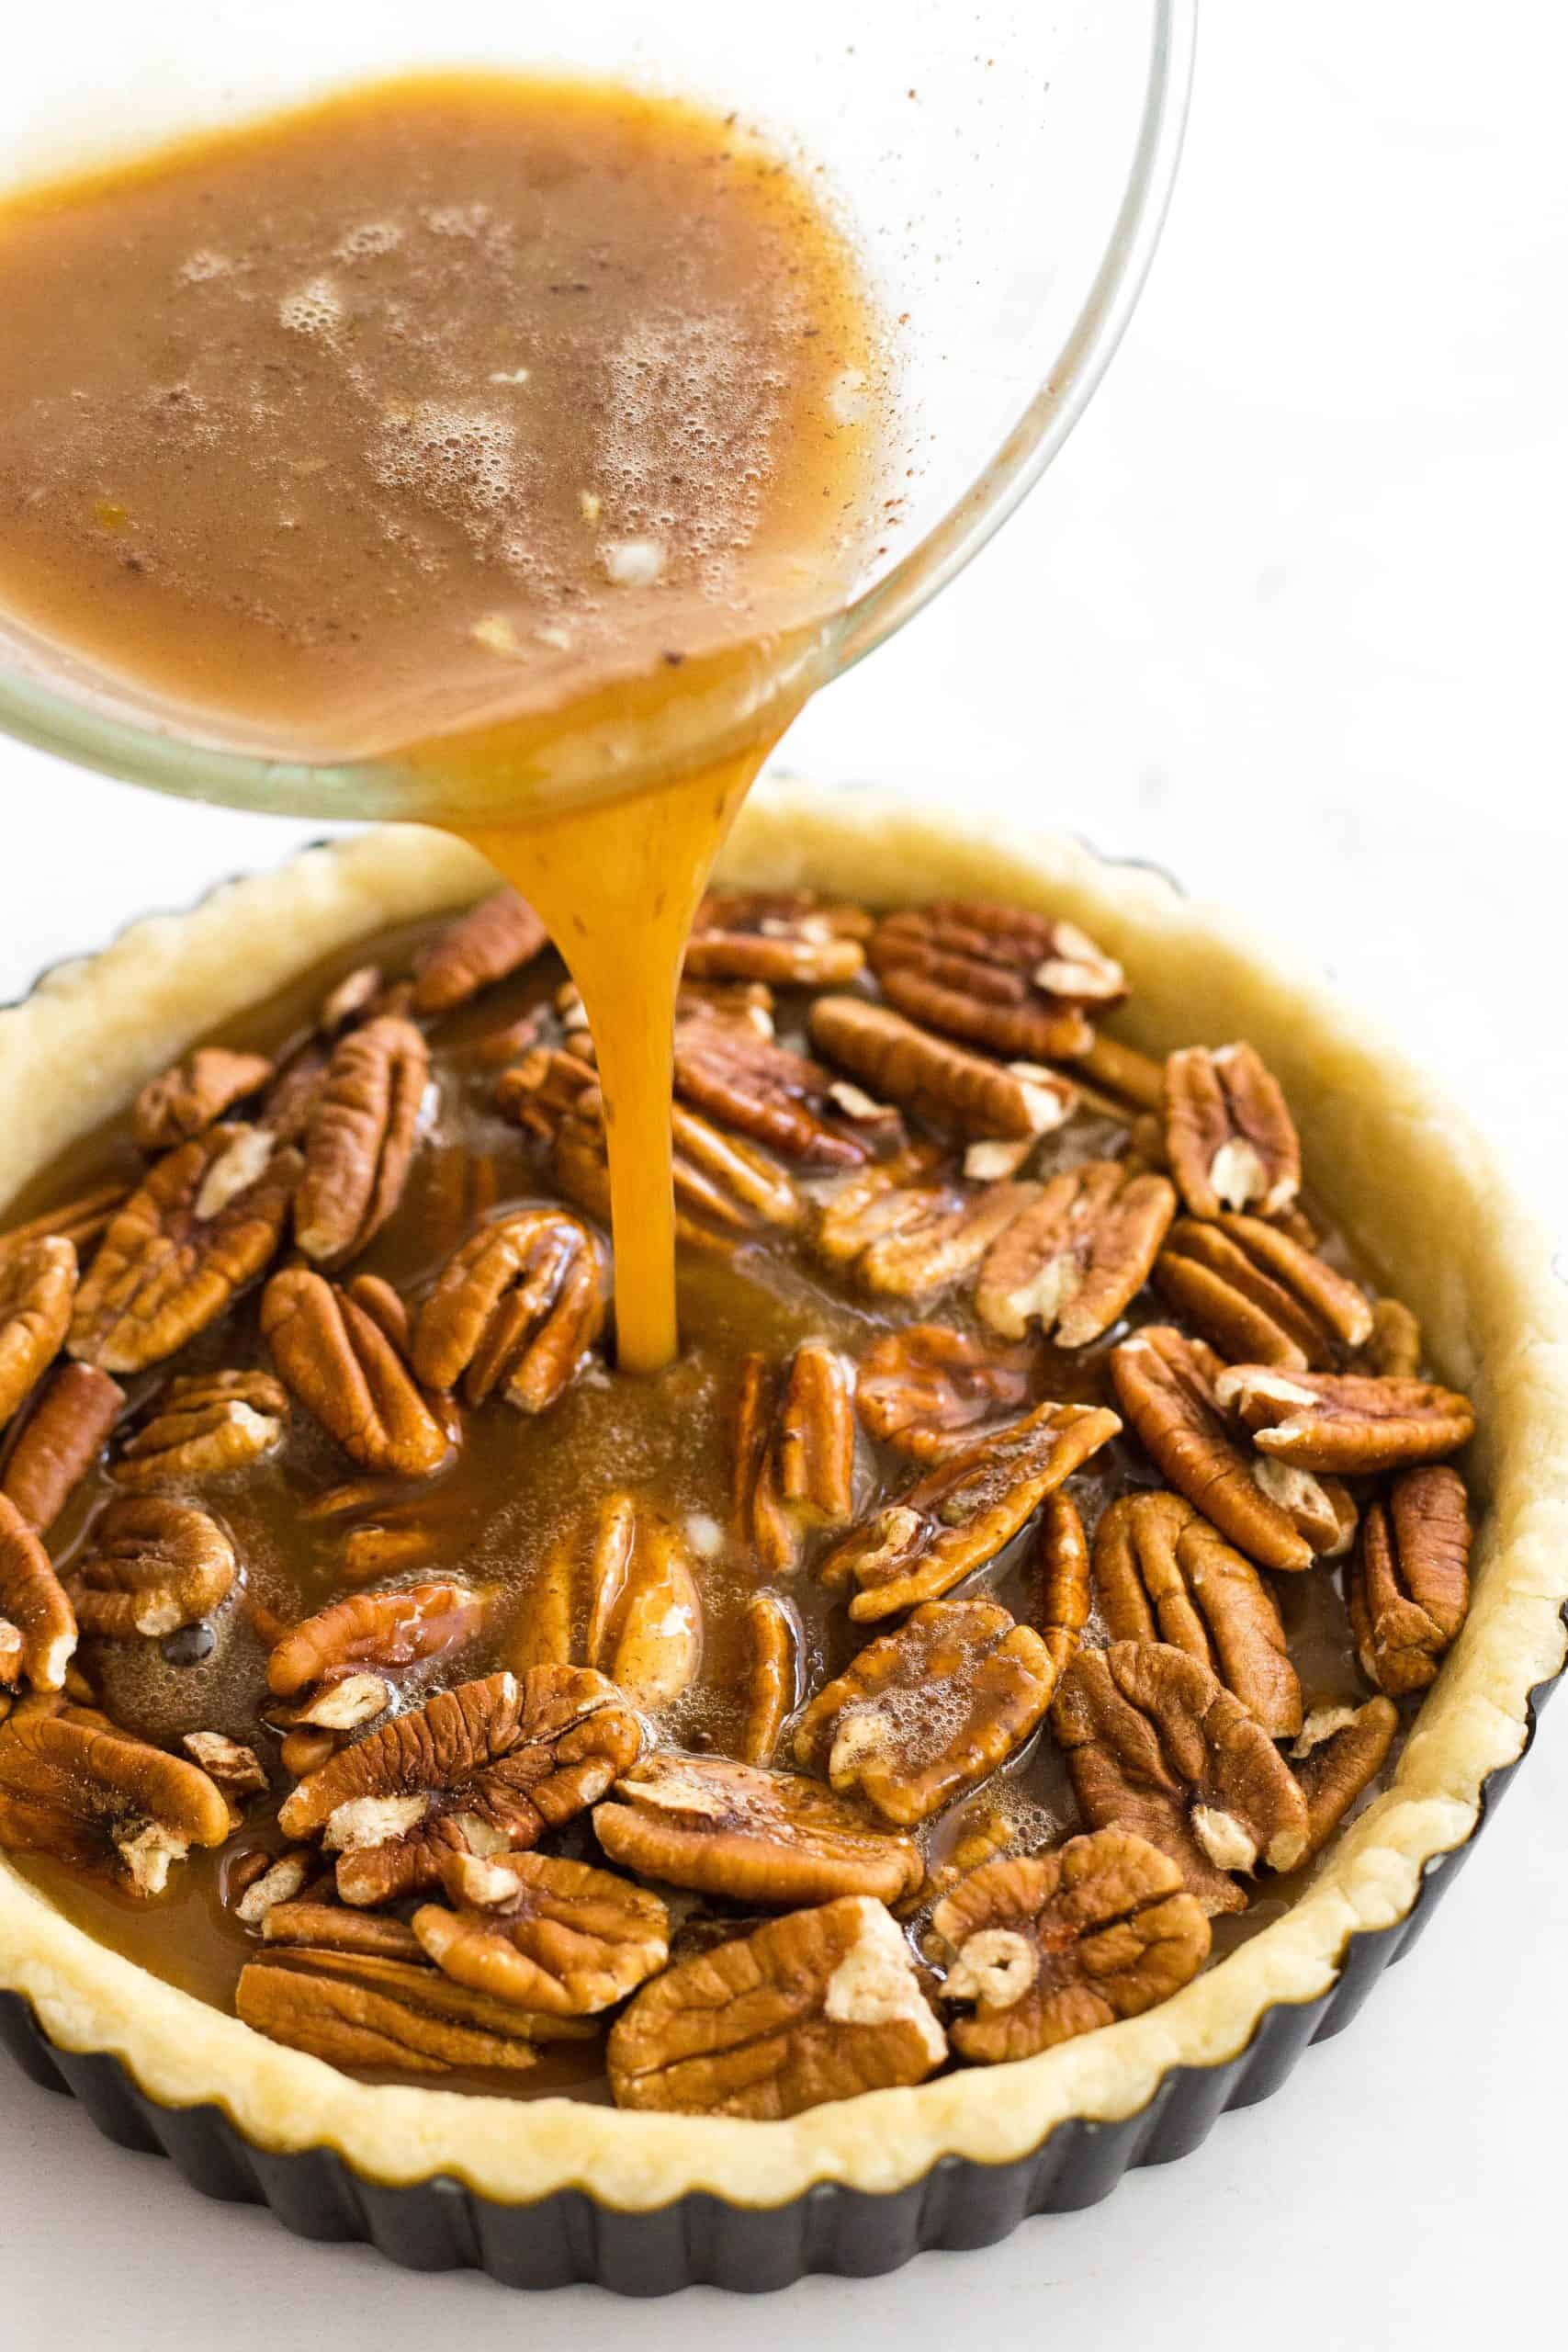 Pouring brown liquid into a crust filled with pecan nuts.